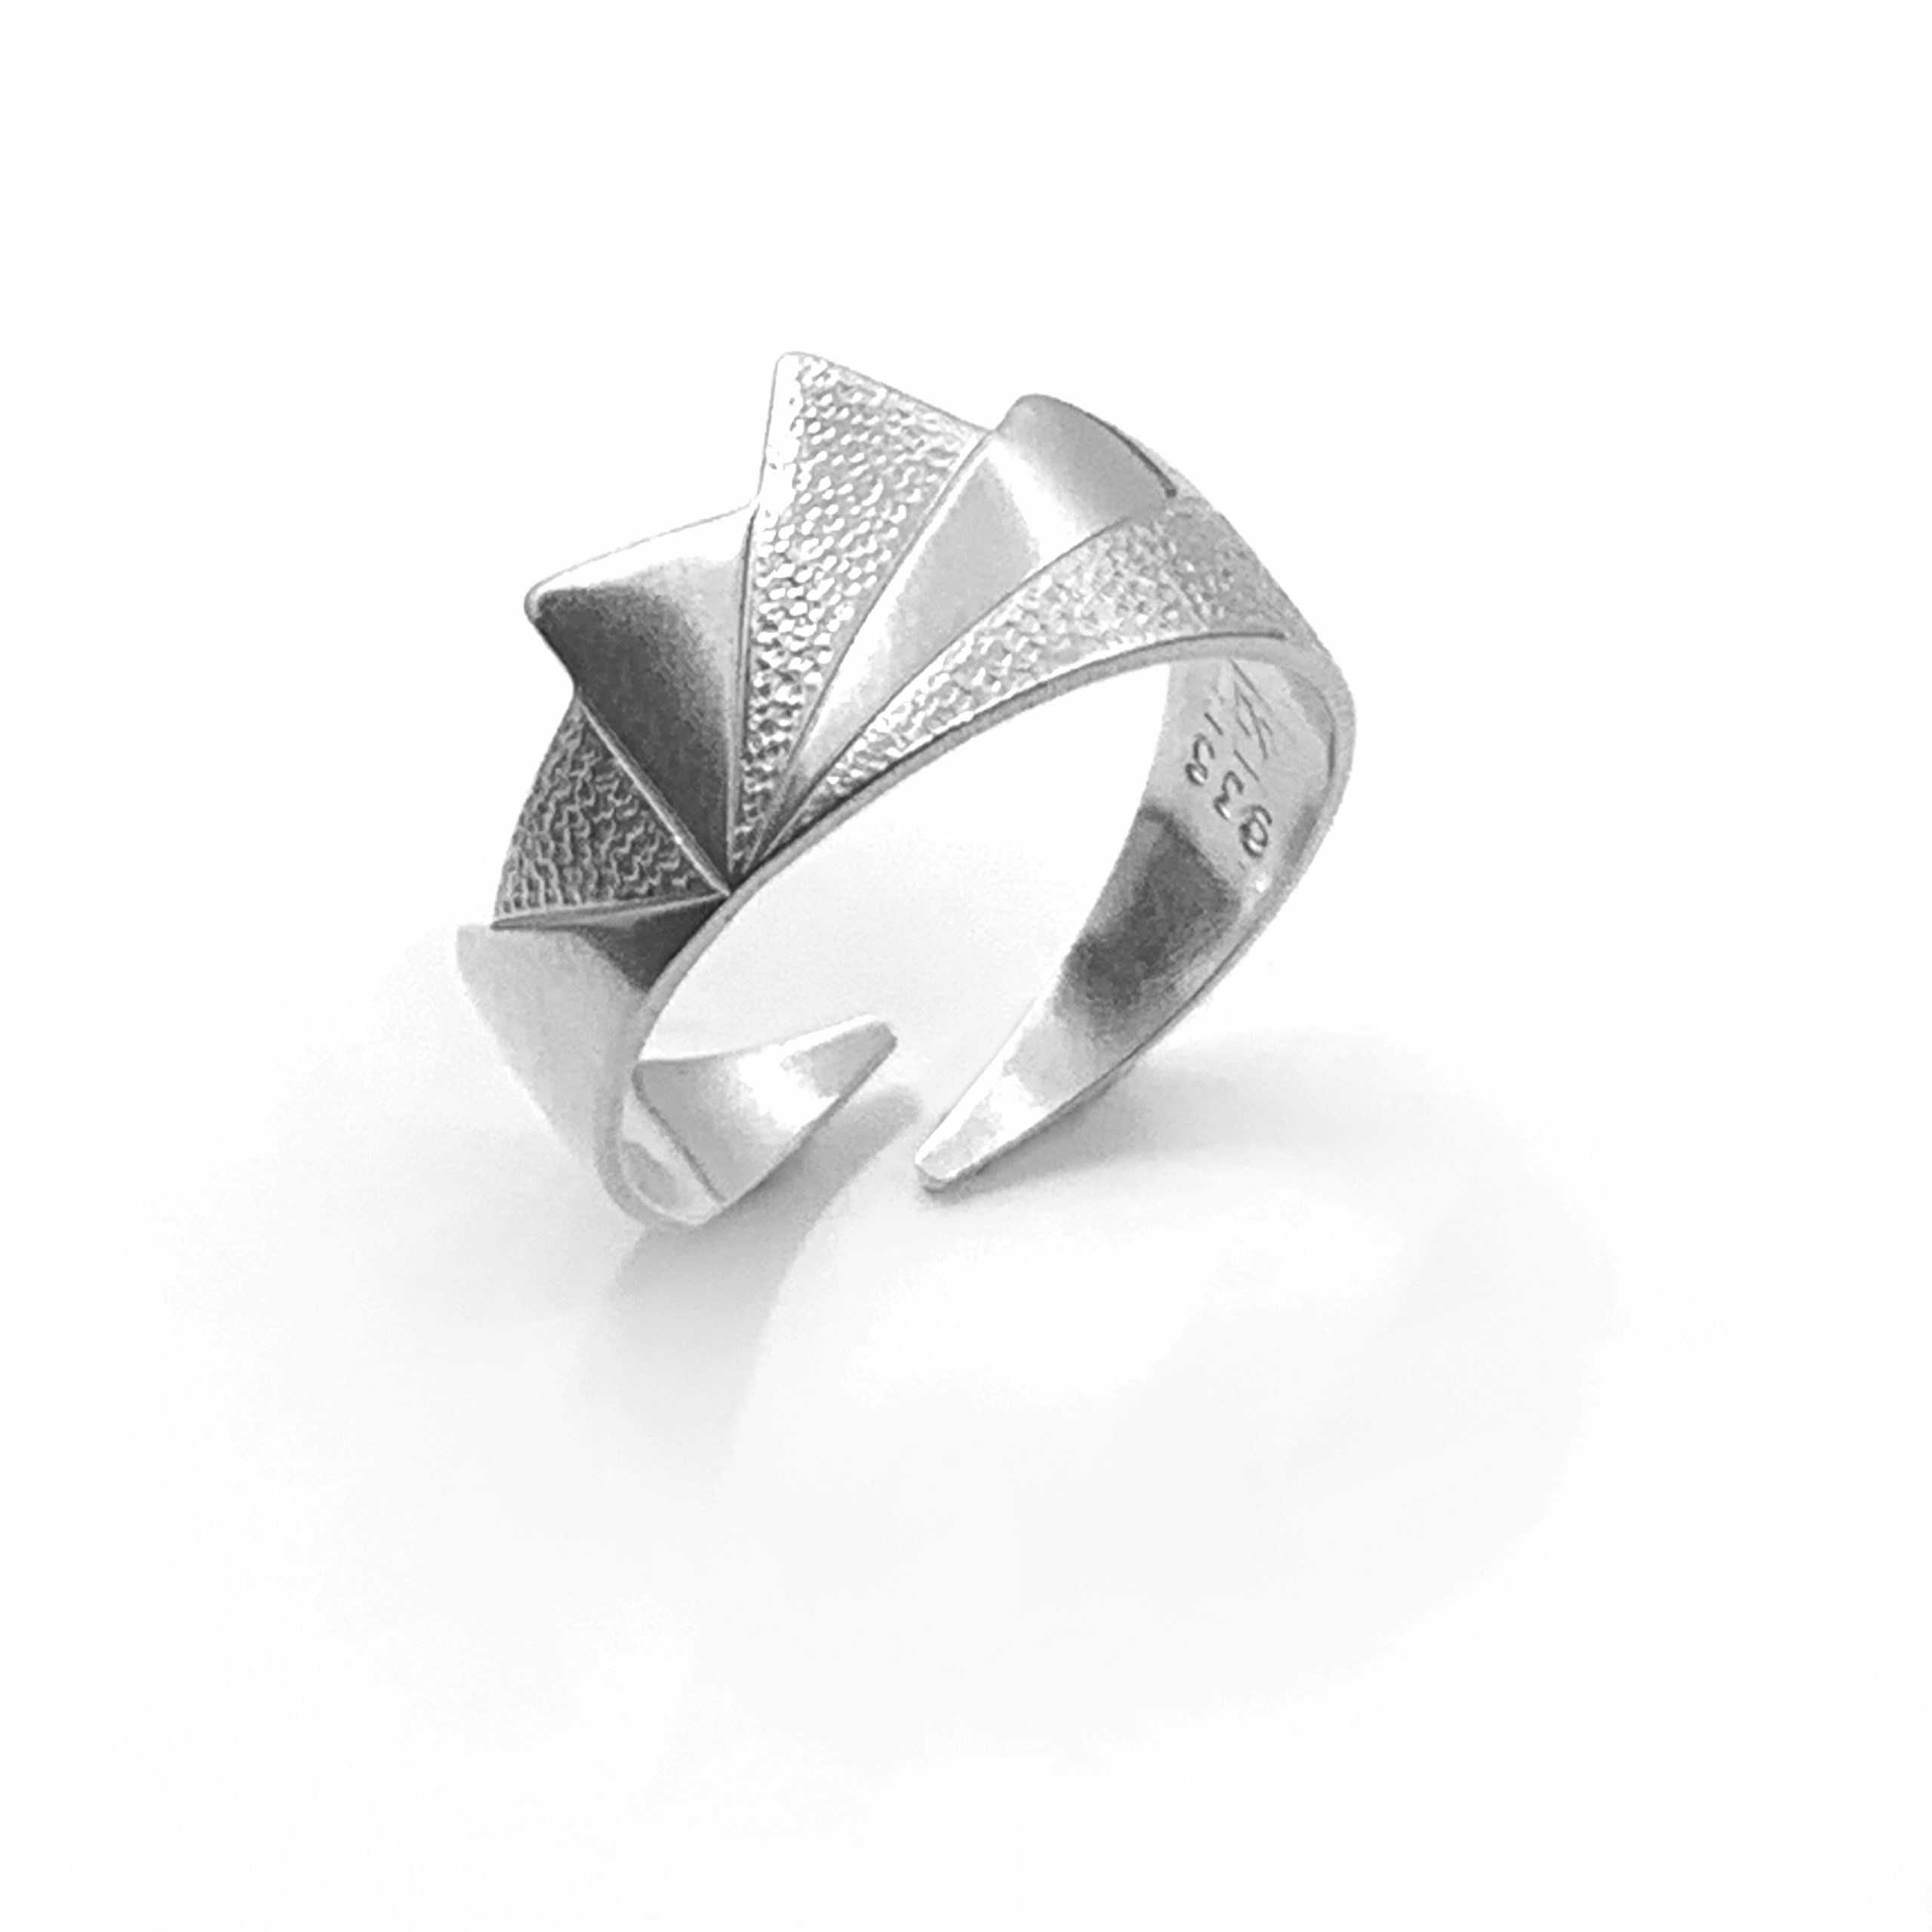 Contrasts 2 silver ring